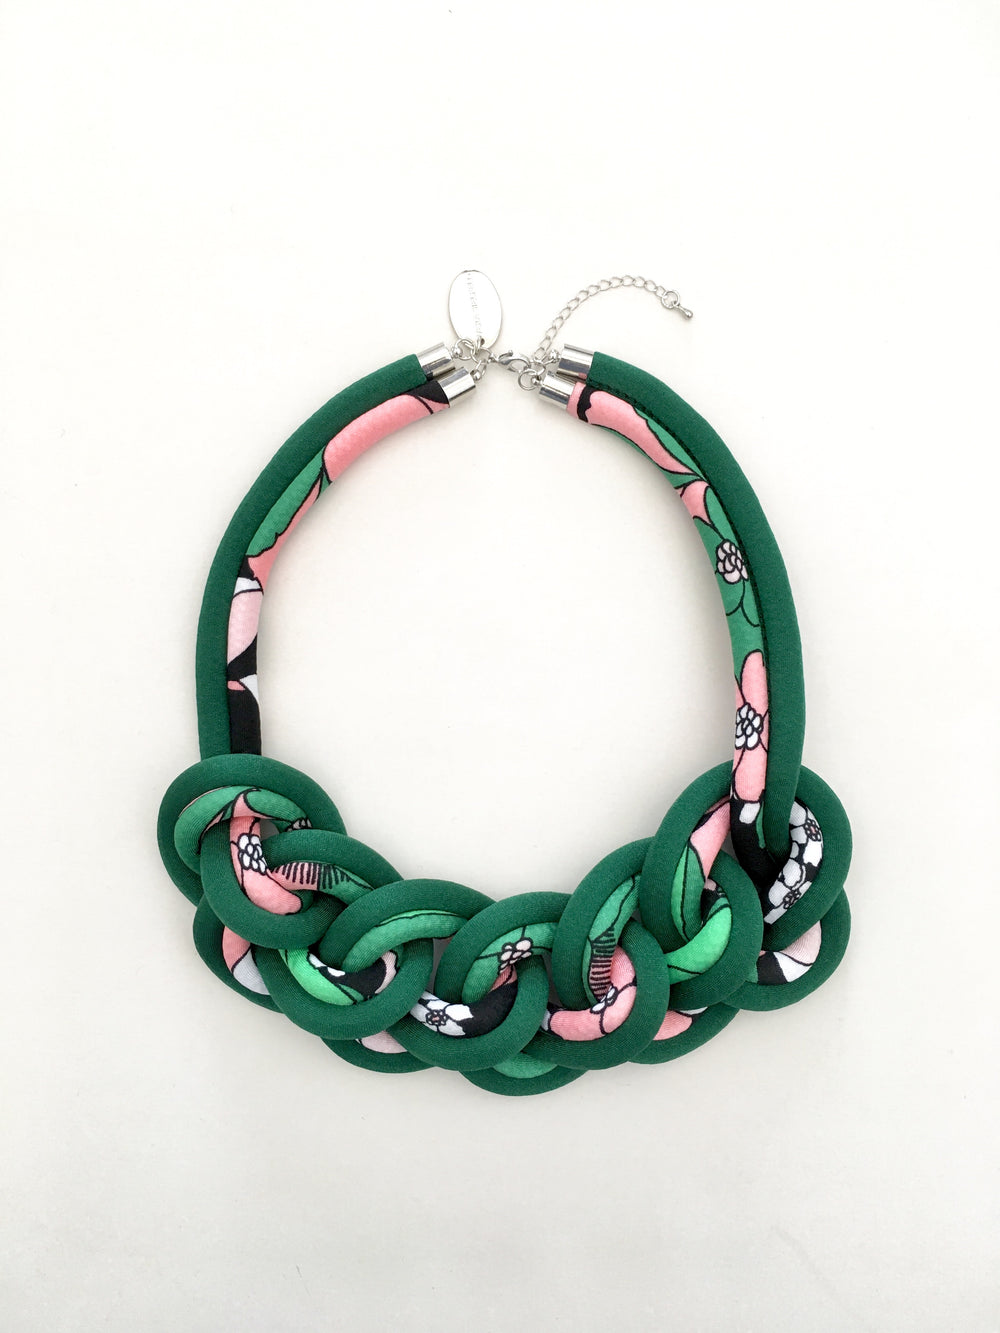 COLLAR CADENA DOBLE verde/mix rosado-verde